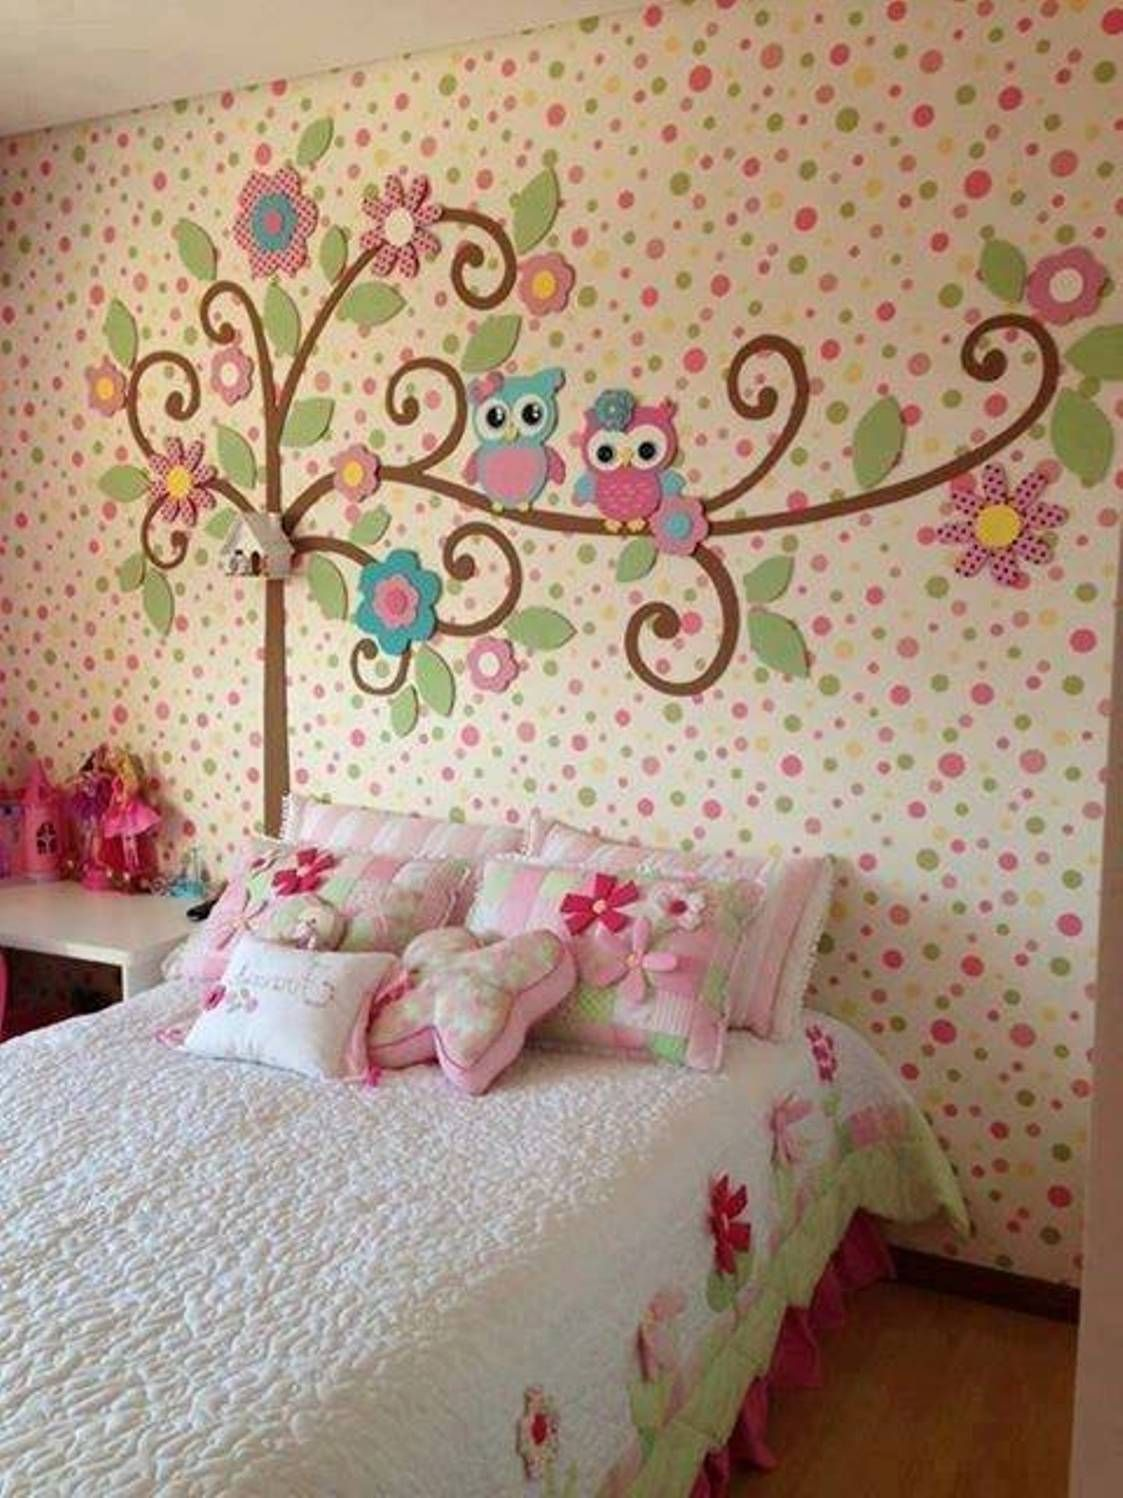 Cute girls bedroom design little girls bedroom design for Girl room design ideas